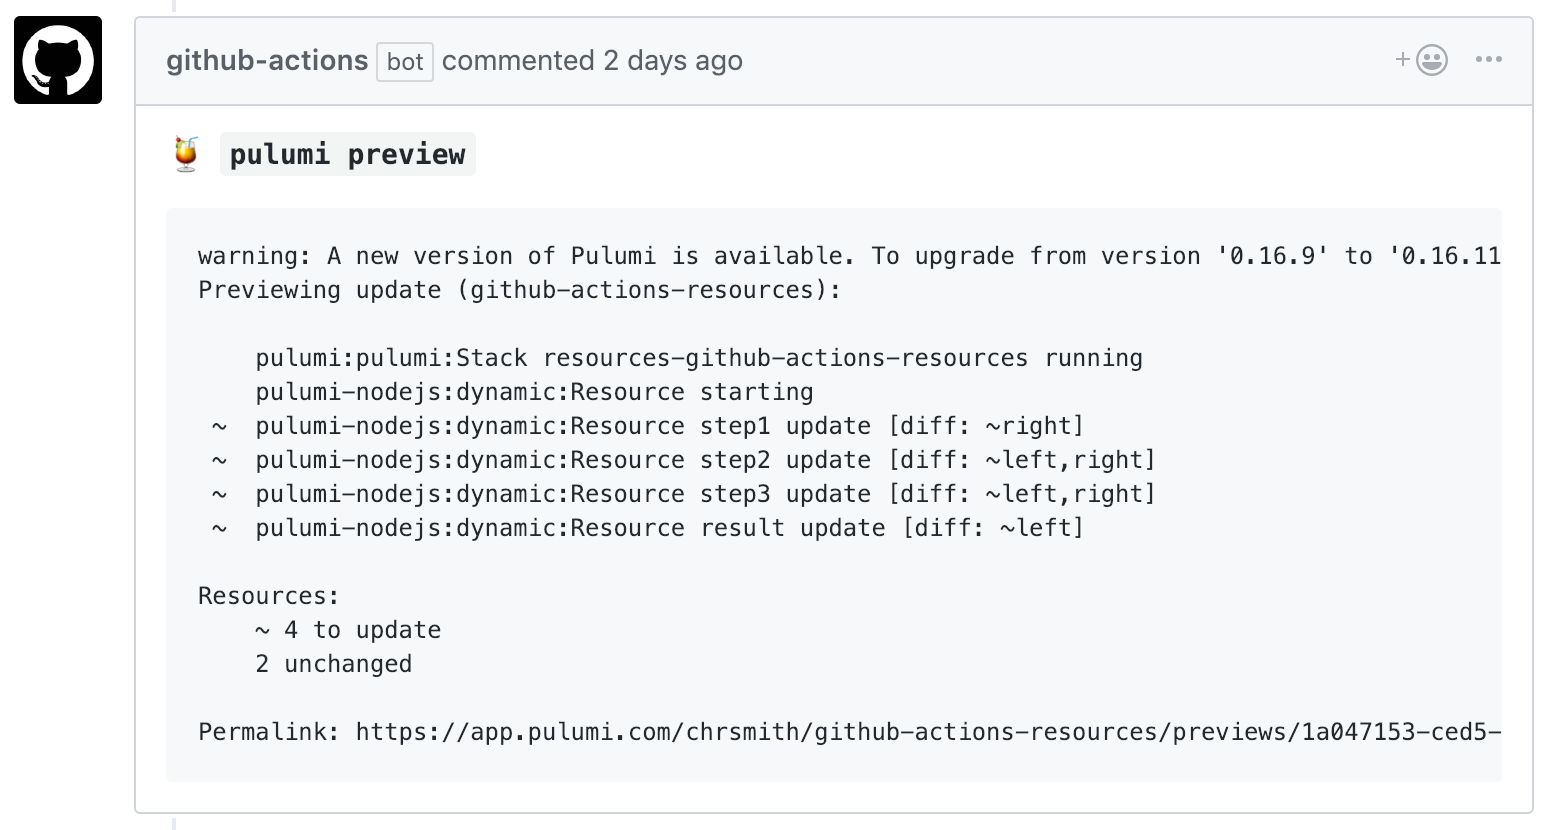 Comment from GitHub Actions